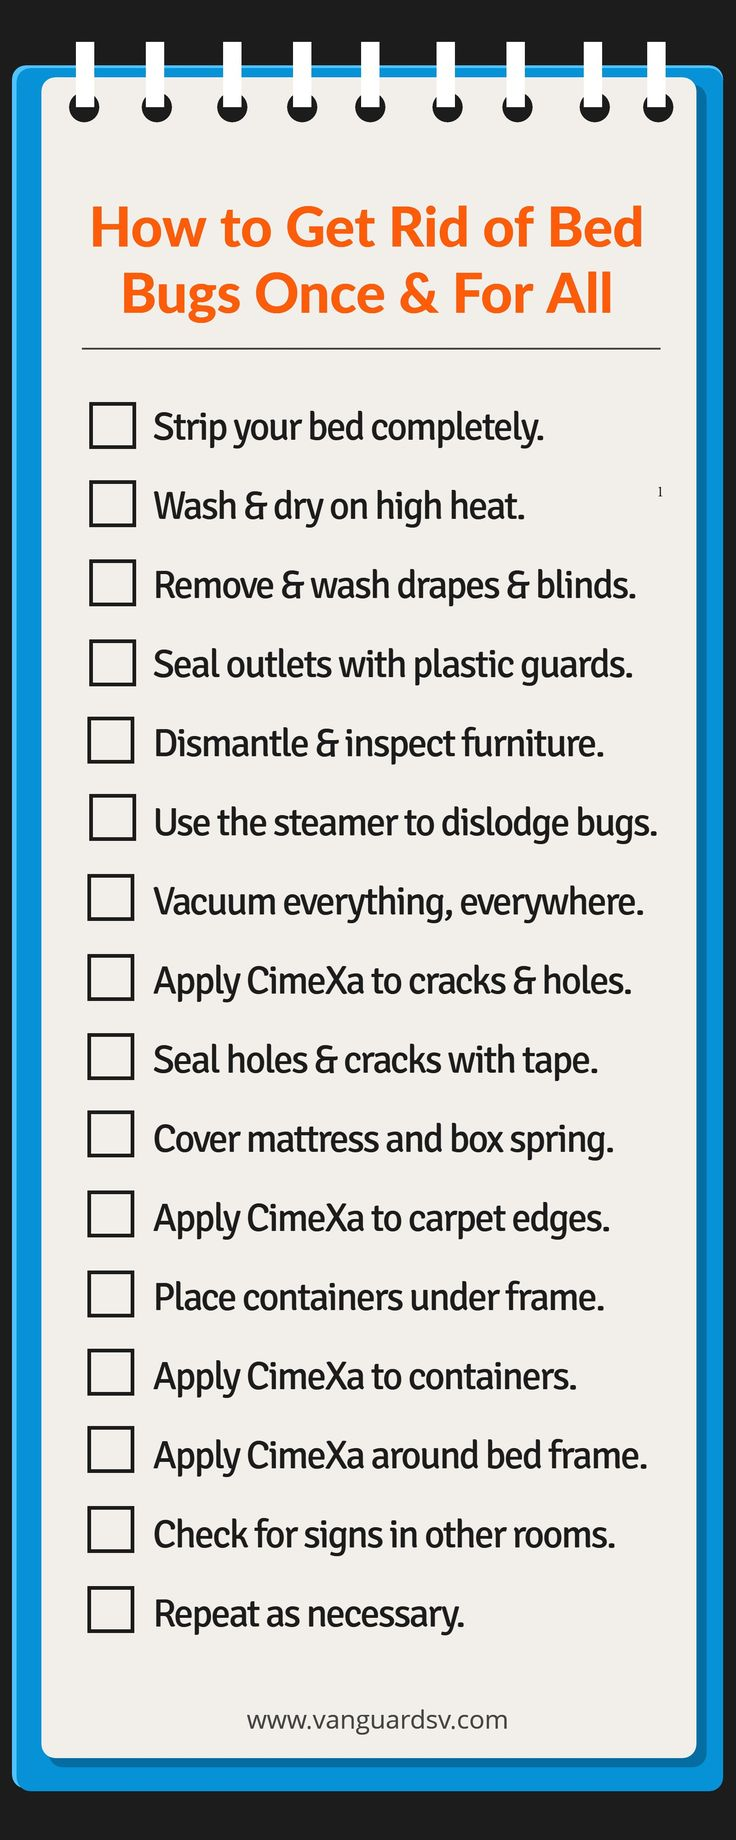 Janitorial Services Tips to get rid of Bed Bugs - Infographic - Fresno - Visalia - Tulare - Clovis - Kingsburg